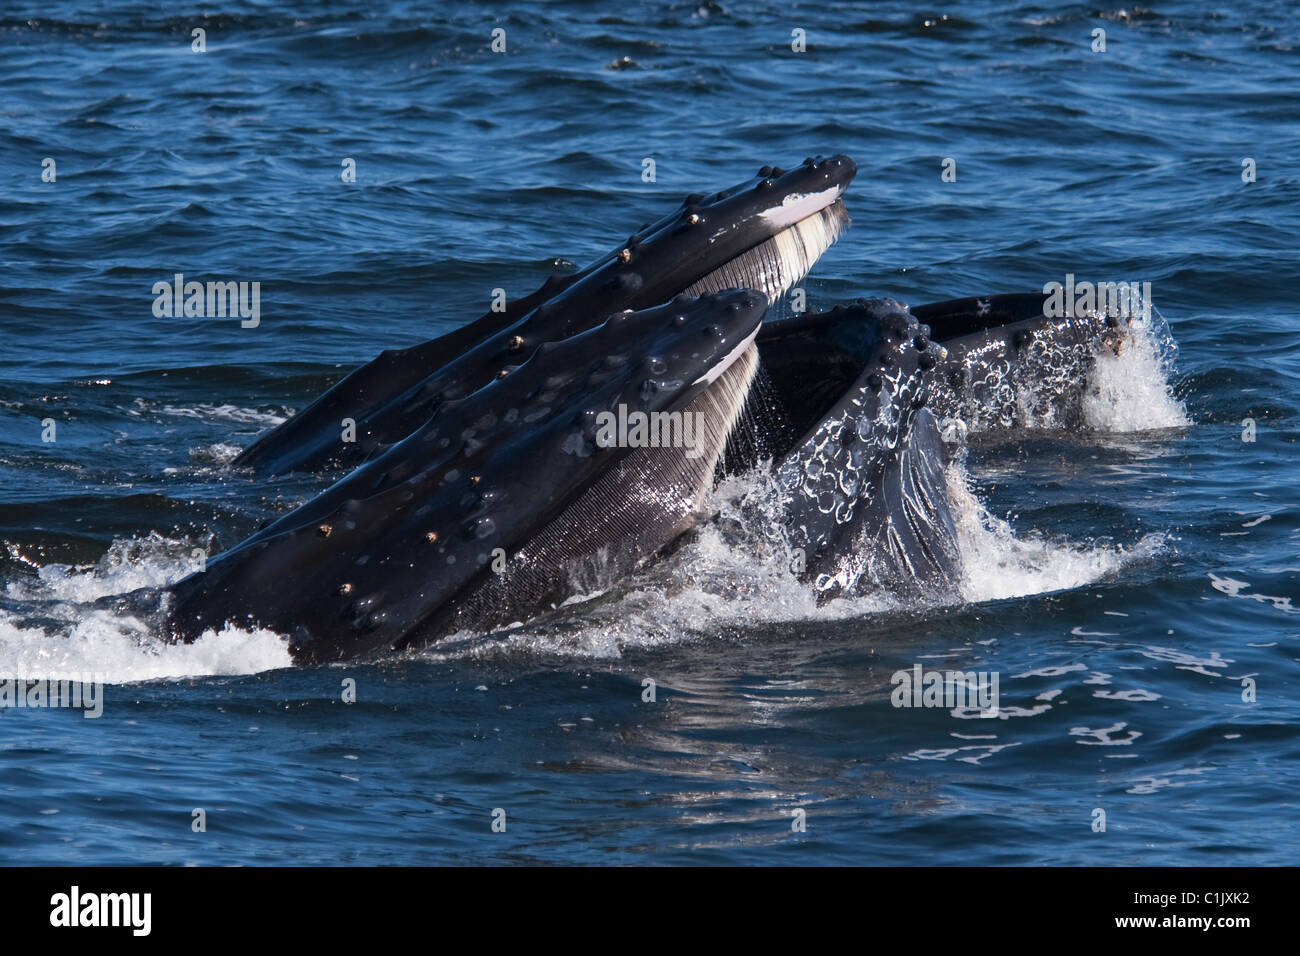 Two Humpback Whales (Megaptera novaeangliae) lunge-feeding on Krill. Monterey, California, Pacific Ocean. Stock Photo